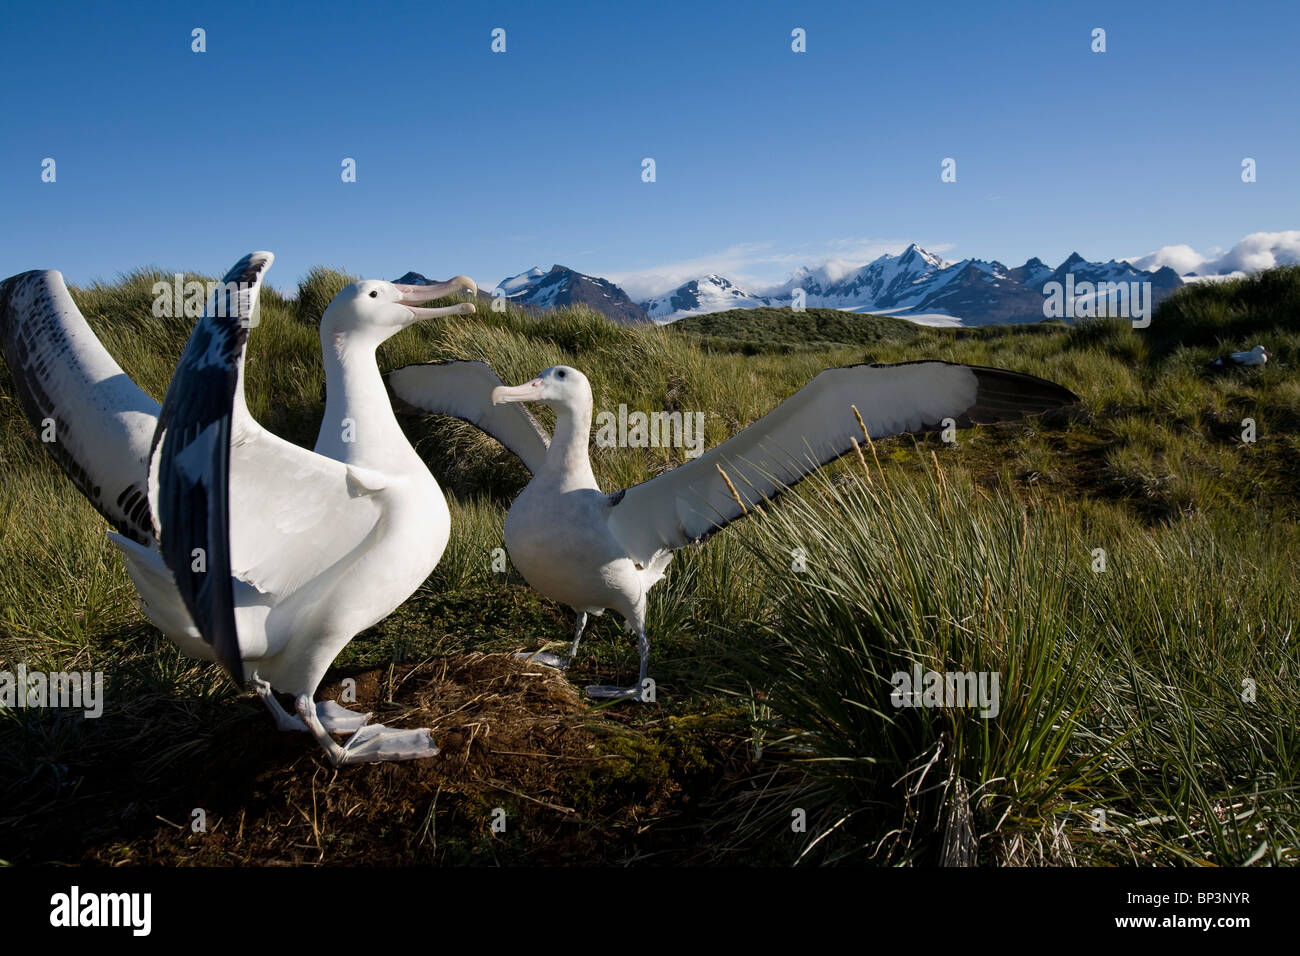 Antarctica, South Georgia Island , Courtship display of Wandering Albatross (Diomedea exulans) on Prion Island - Stock Image